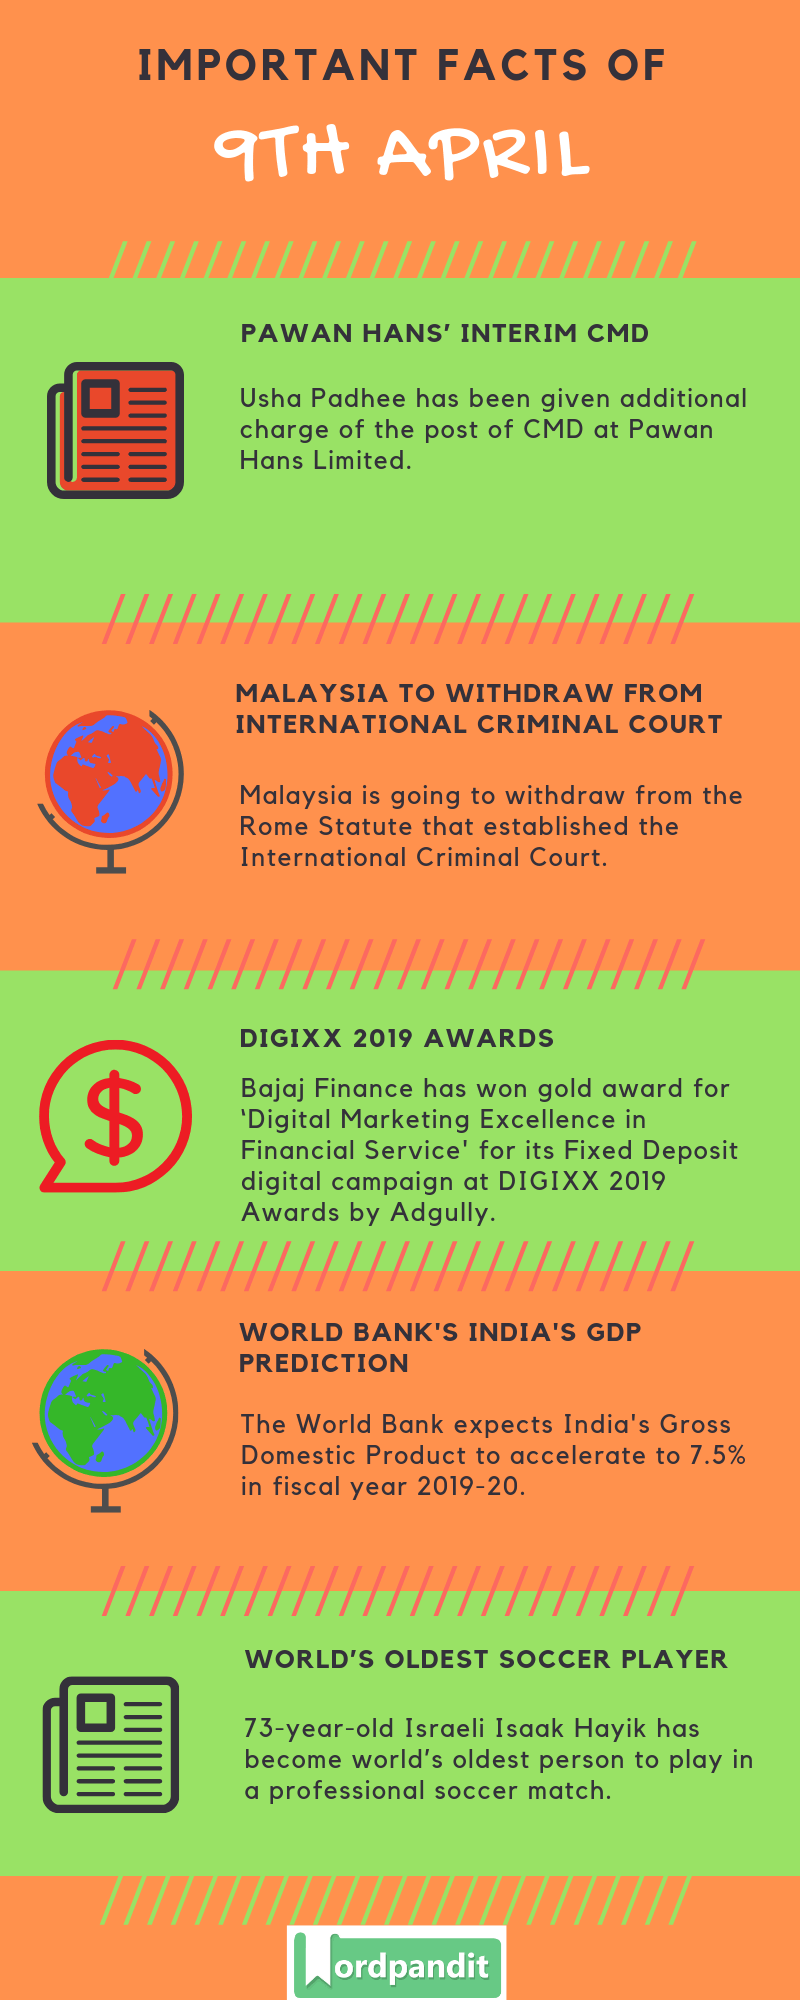 Daily Current Affairs 9 April 2019 Current Affairs Quiz 9 April 2019 Current Affairs Infographic